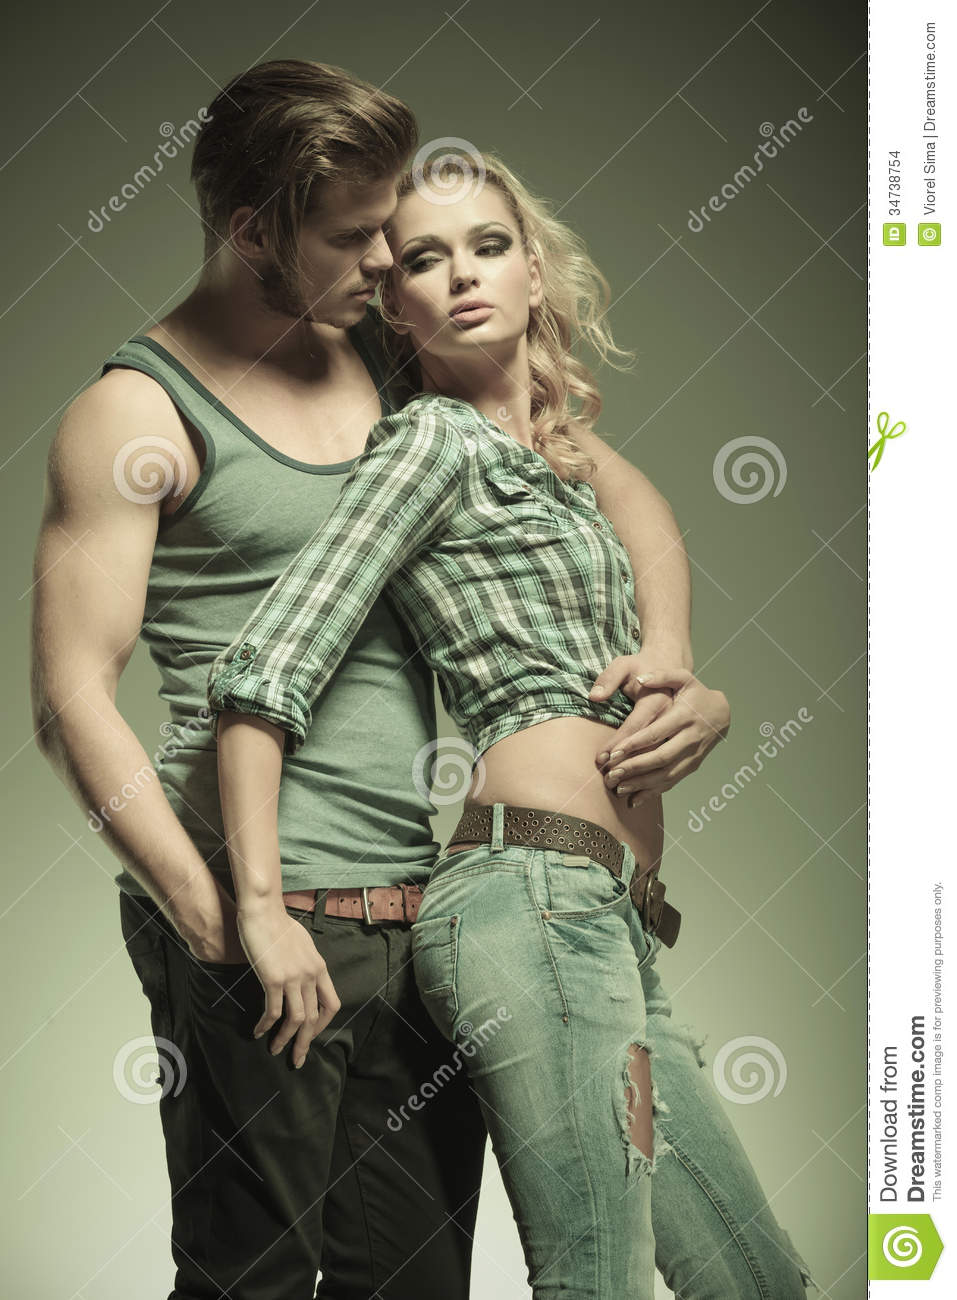 In Love Fashion Couple Stock Photo. Image Of Love, Blue